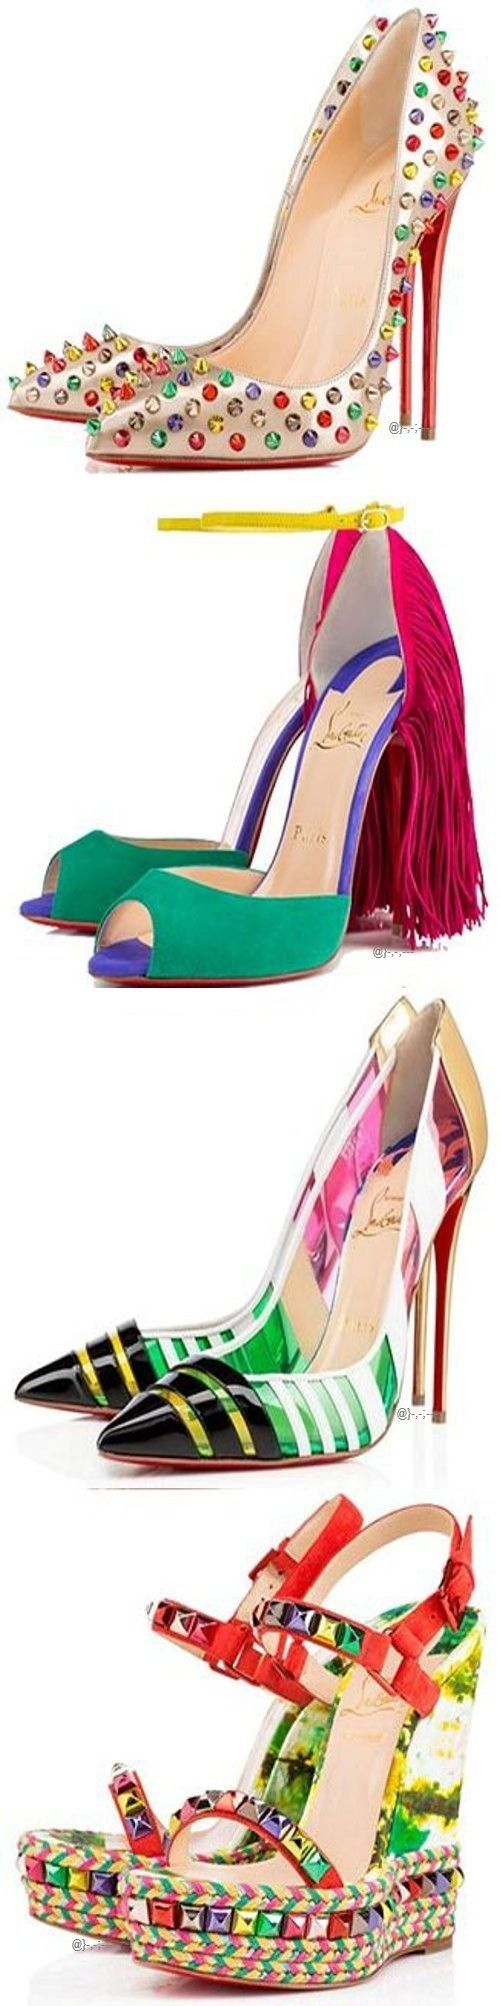 Christian Louboutin Spring 2015 ~ Colette @}-,-;---I'm pretty sure I need the top pair.